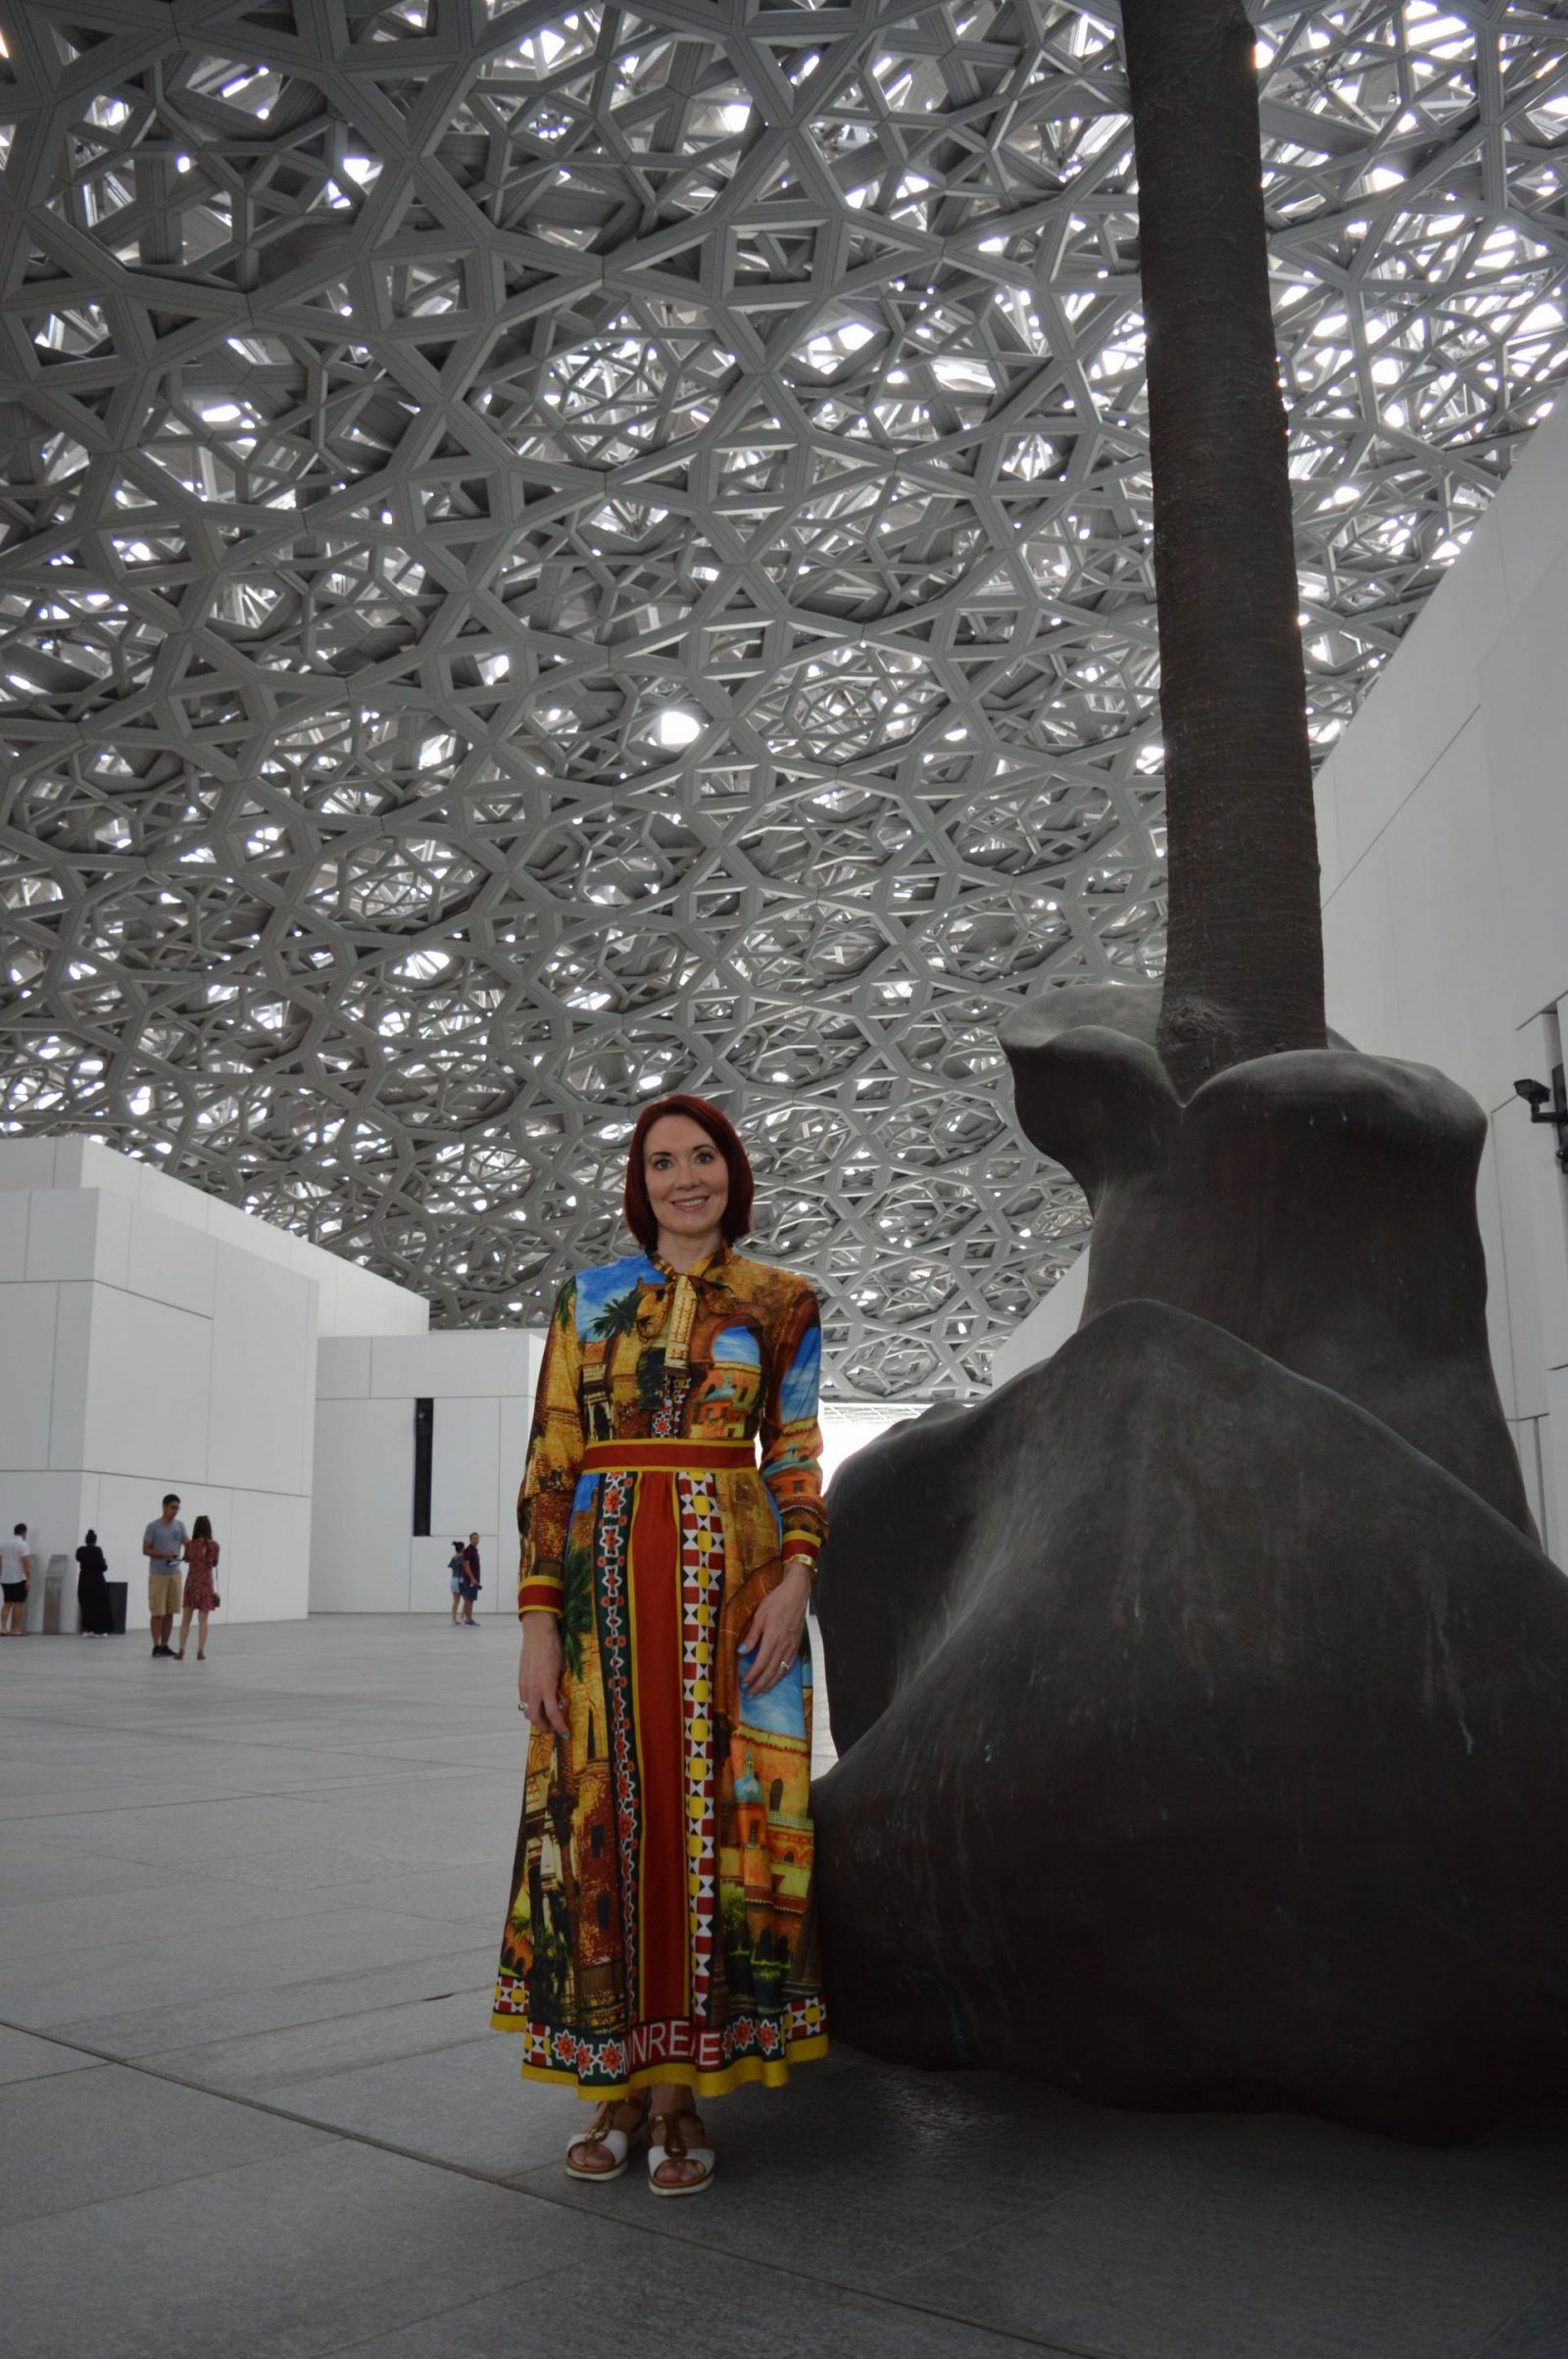 6 Things To Do in Abu Dhabi, Louvre Abu Dhabi rof dome inside